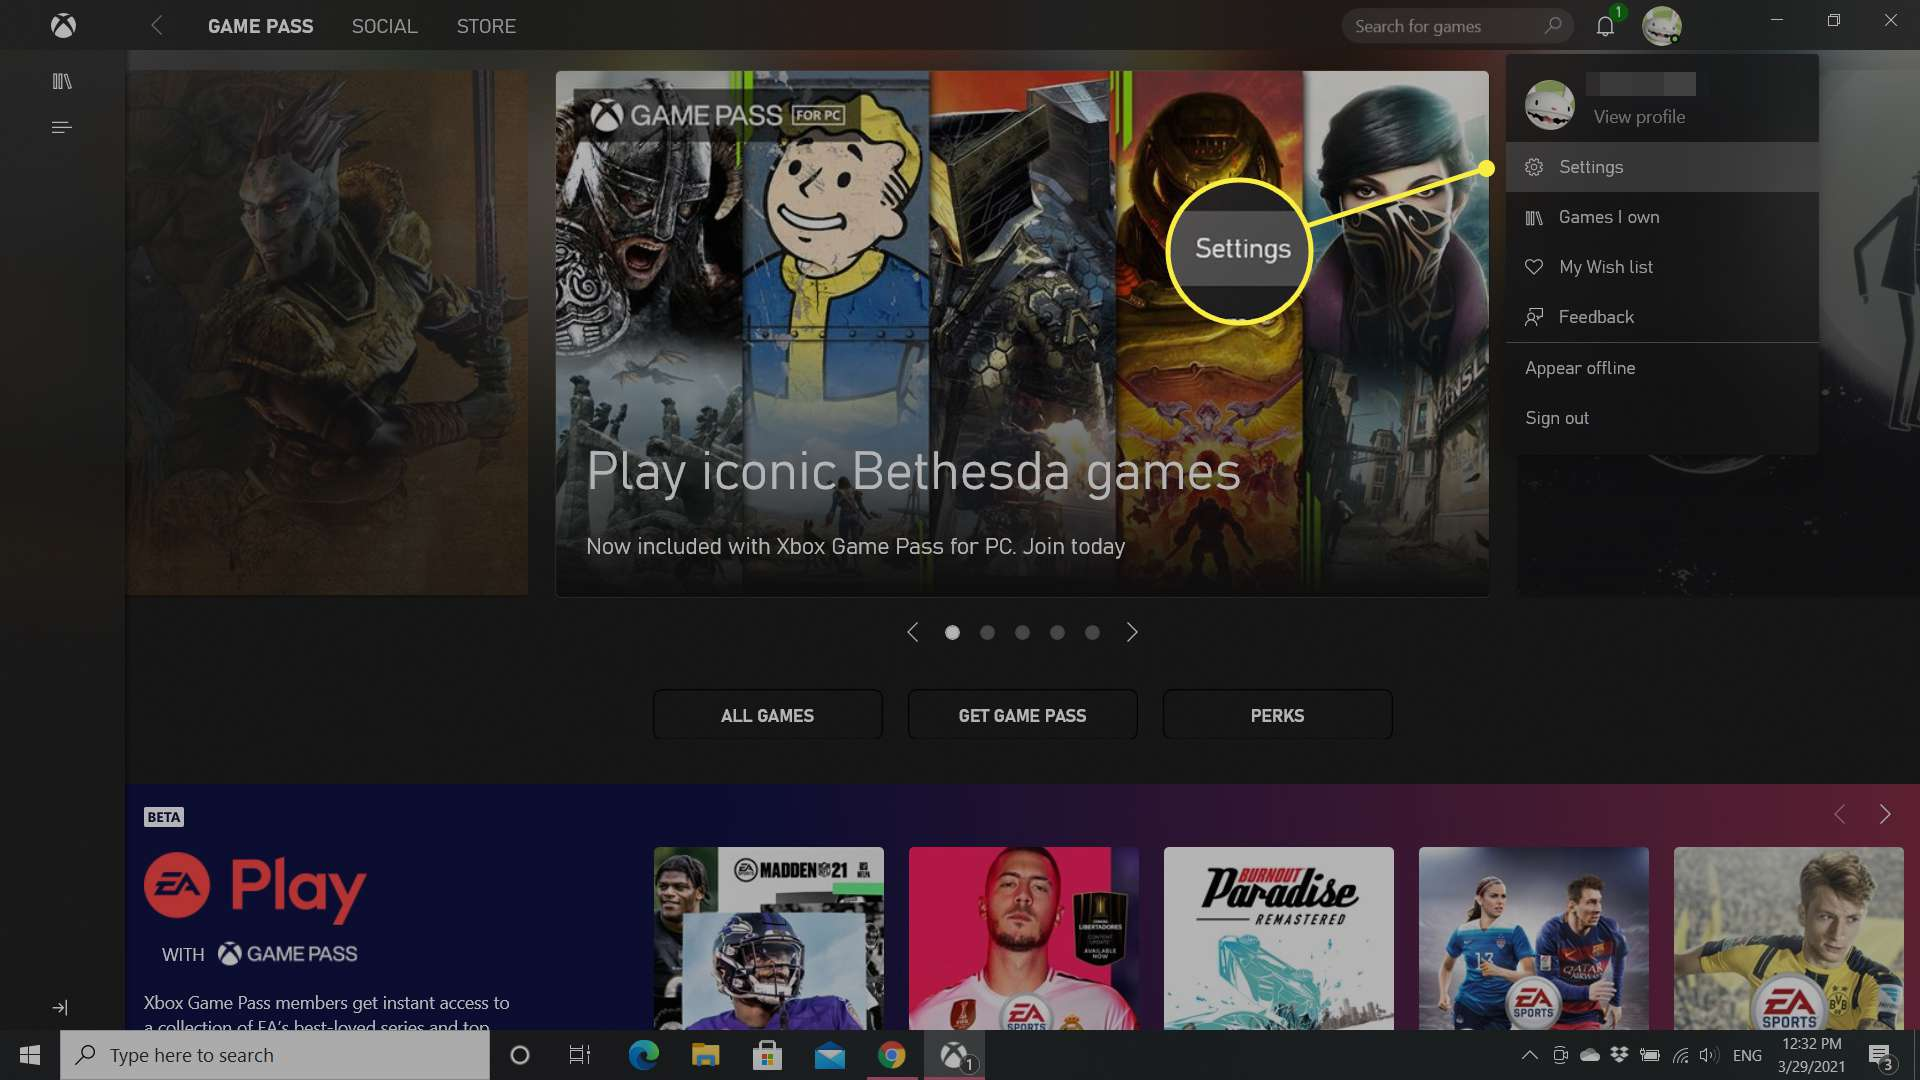 The Windows 10 Xbox app with the Settings option highlighted